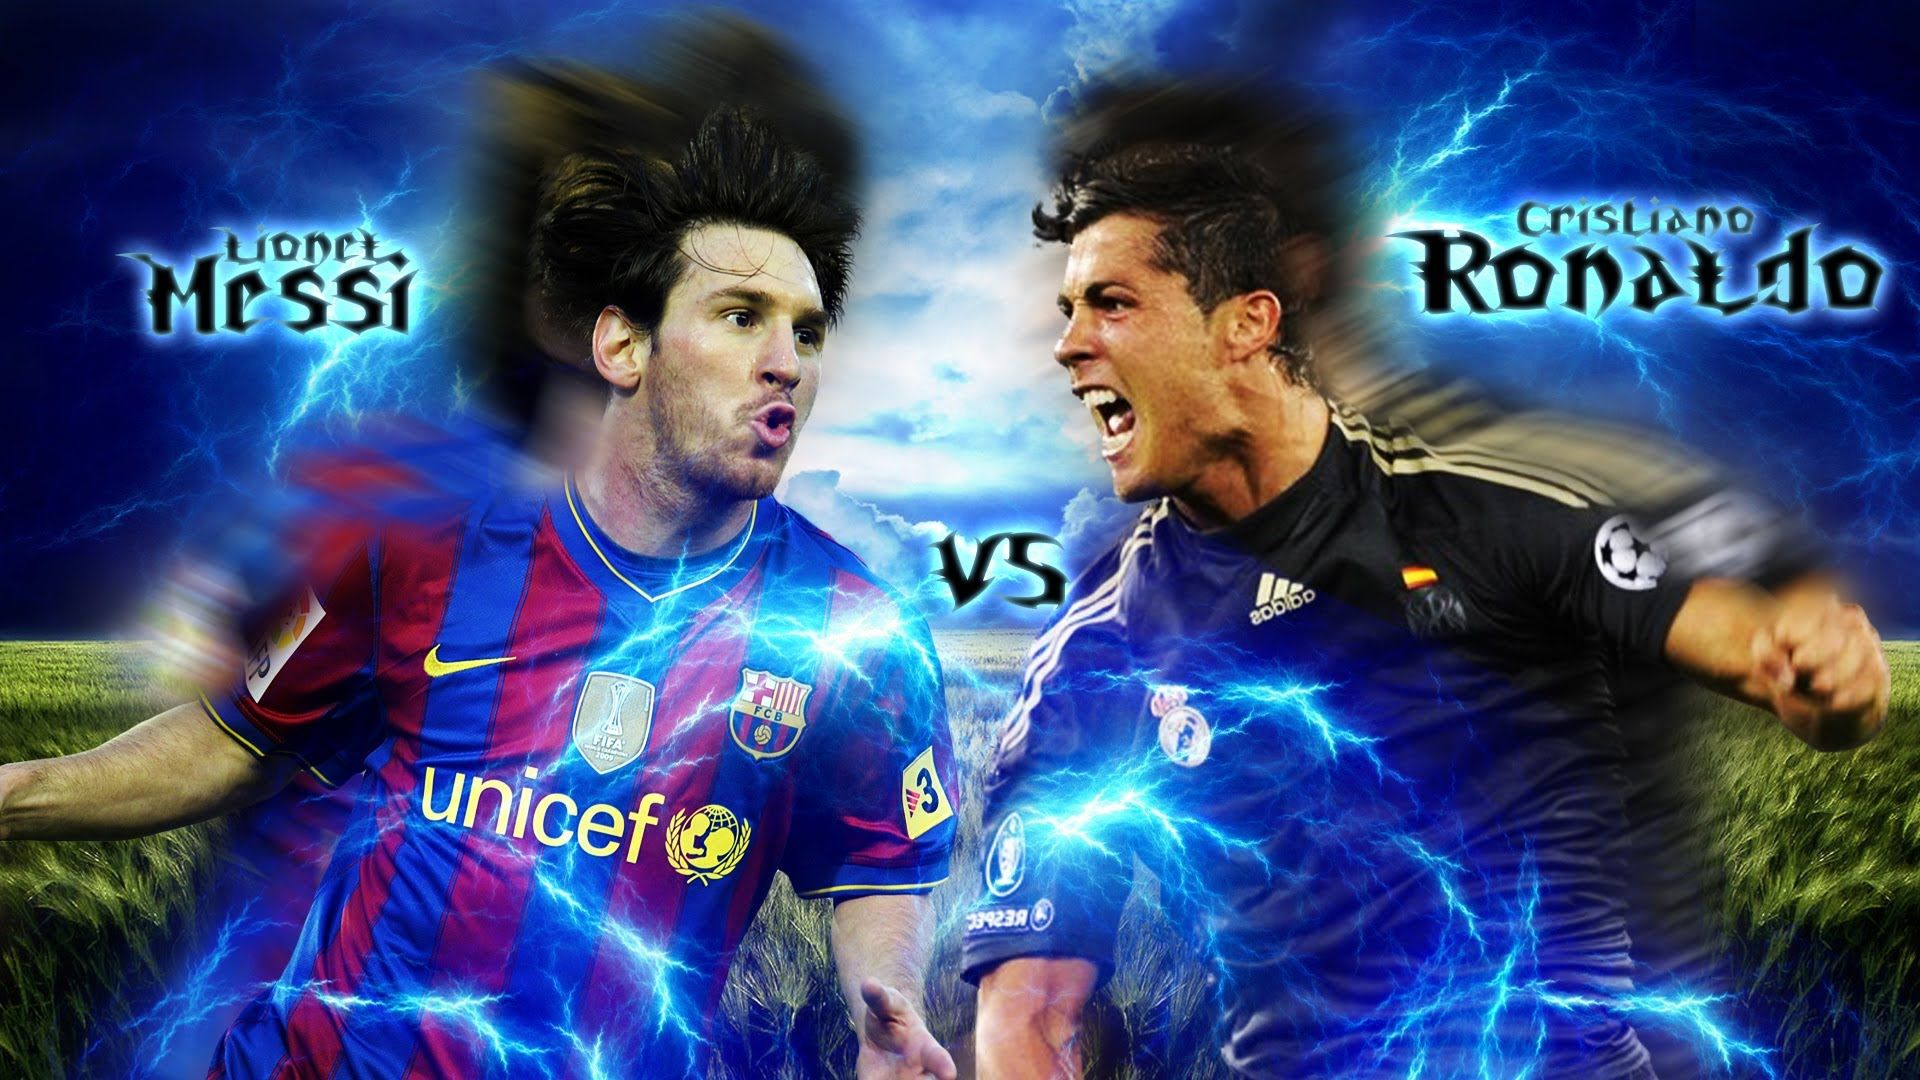 Cristiano Ronaldo Vs Messi Wallpapers Posted By Zoey Simpson